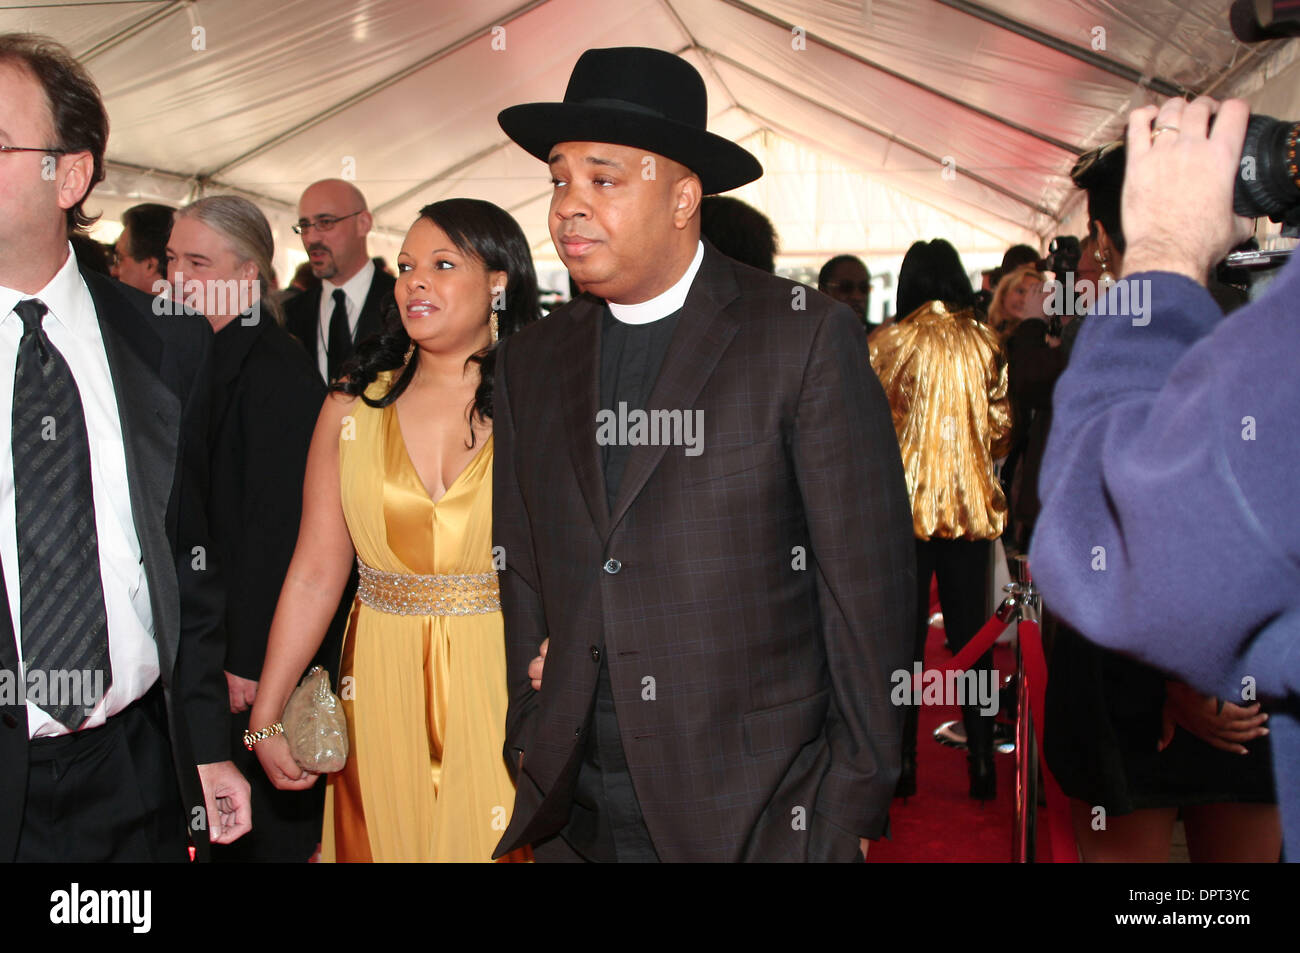 April 4, 2009 Cleveland, OH..Joseph ''Reverend Run'' Simmons of Run DMC, walked the red carpet with his wife, Justine Simmons at the Rock and Roll Hall of Fame induction ceremony at Cleveland's Public Hall Saturday, April 4, 2009...Jeff Moreland/CSMApril 04, 2009 Cleveland, OH....Jeff Moreland/CSM (Credit Image: © Jeff Moreland/Cal Sport Media) - Stock Image